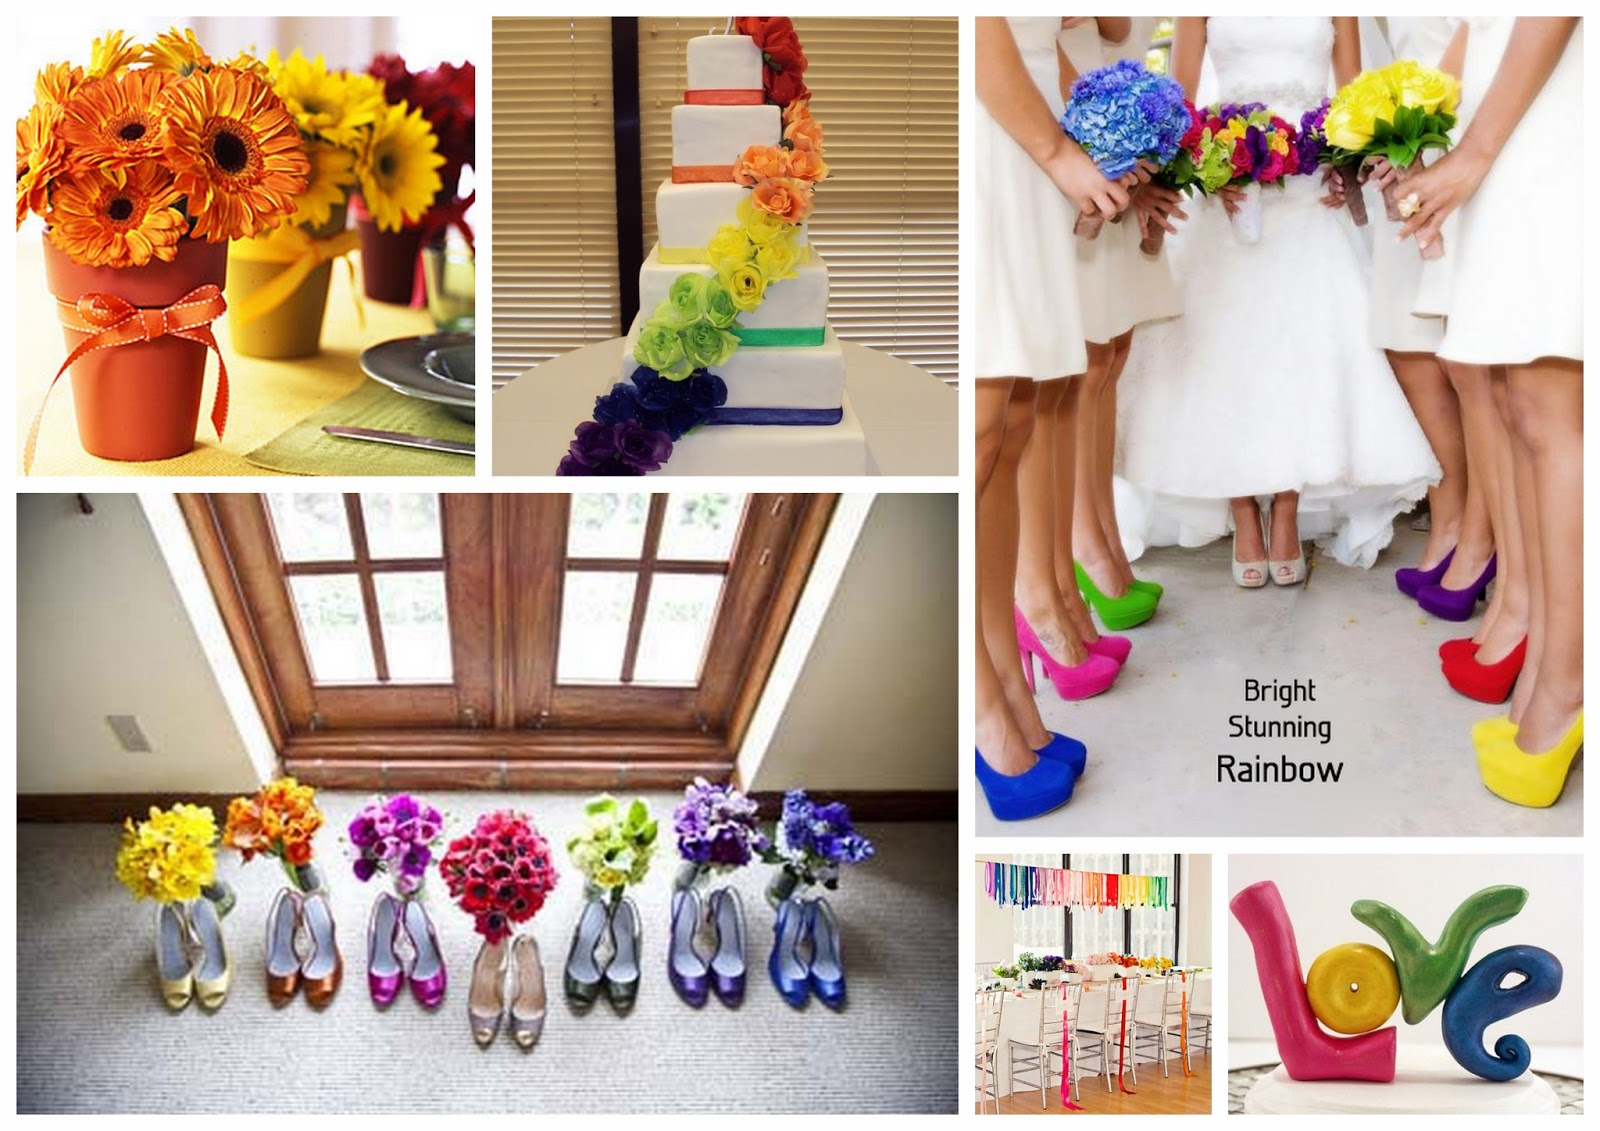 2013 Wedding Trend #1: Rainbow Theme